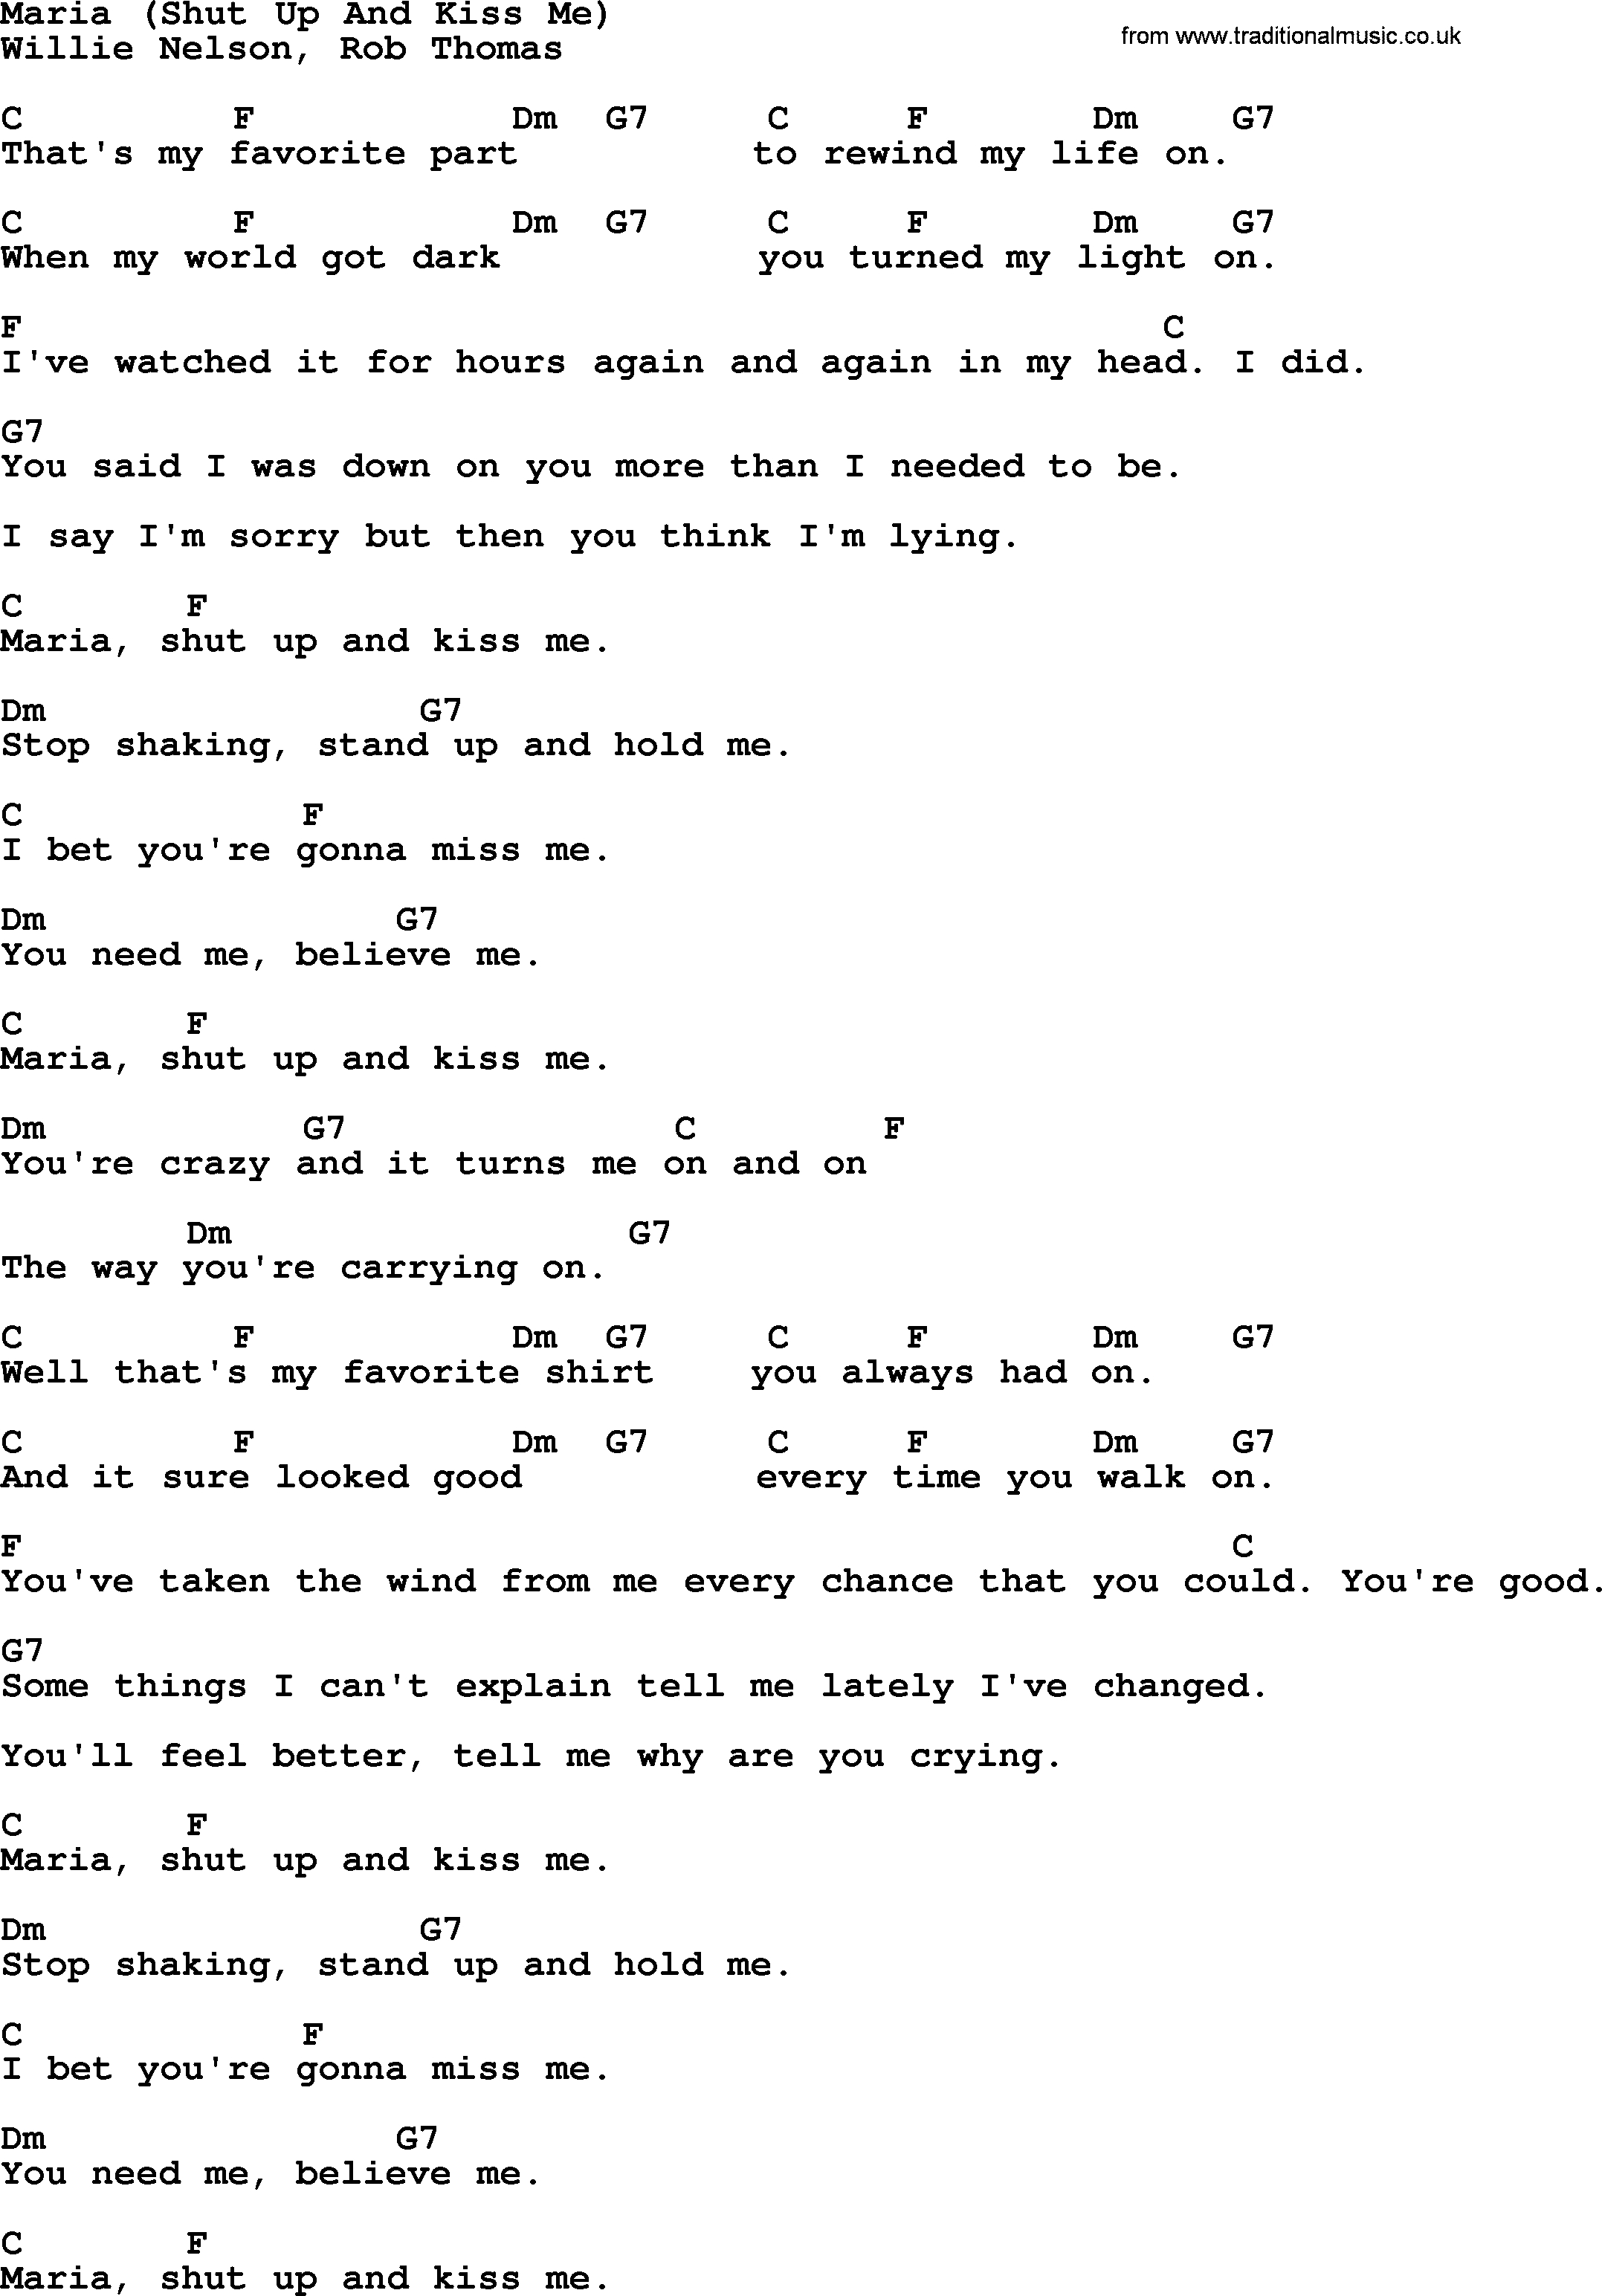 Kiss Me Chords Willie Nelson Song Maria Shut Up And Kiss Me Lyrics And Chords